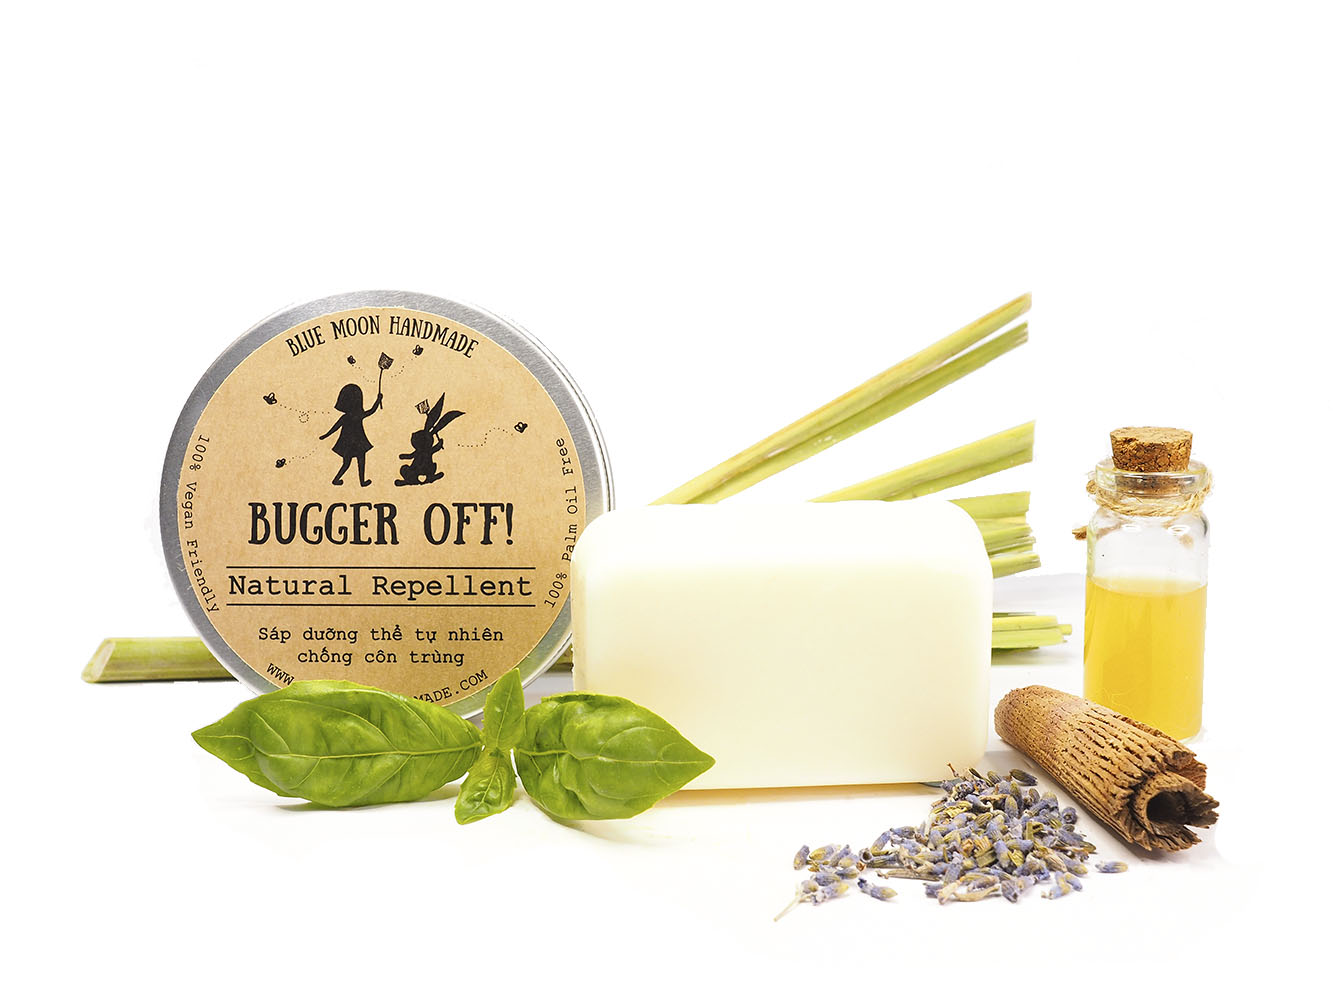 Bugger Off! Insect Repellent Blue Moon Handmade